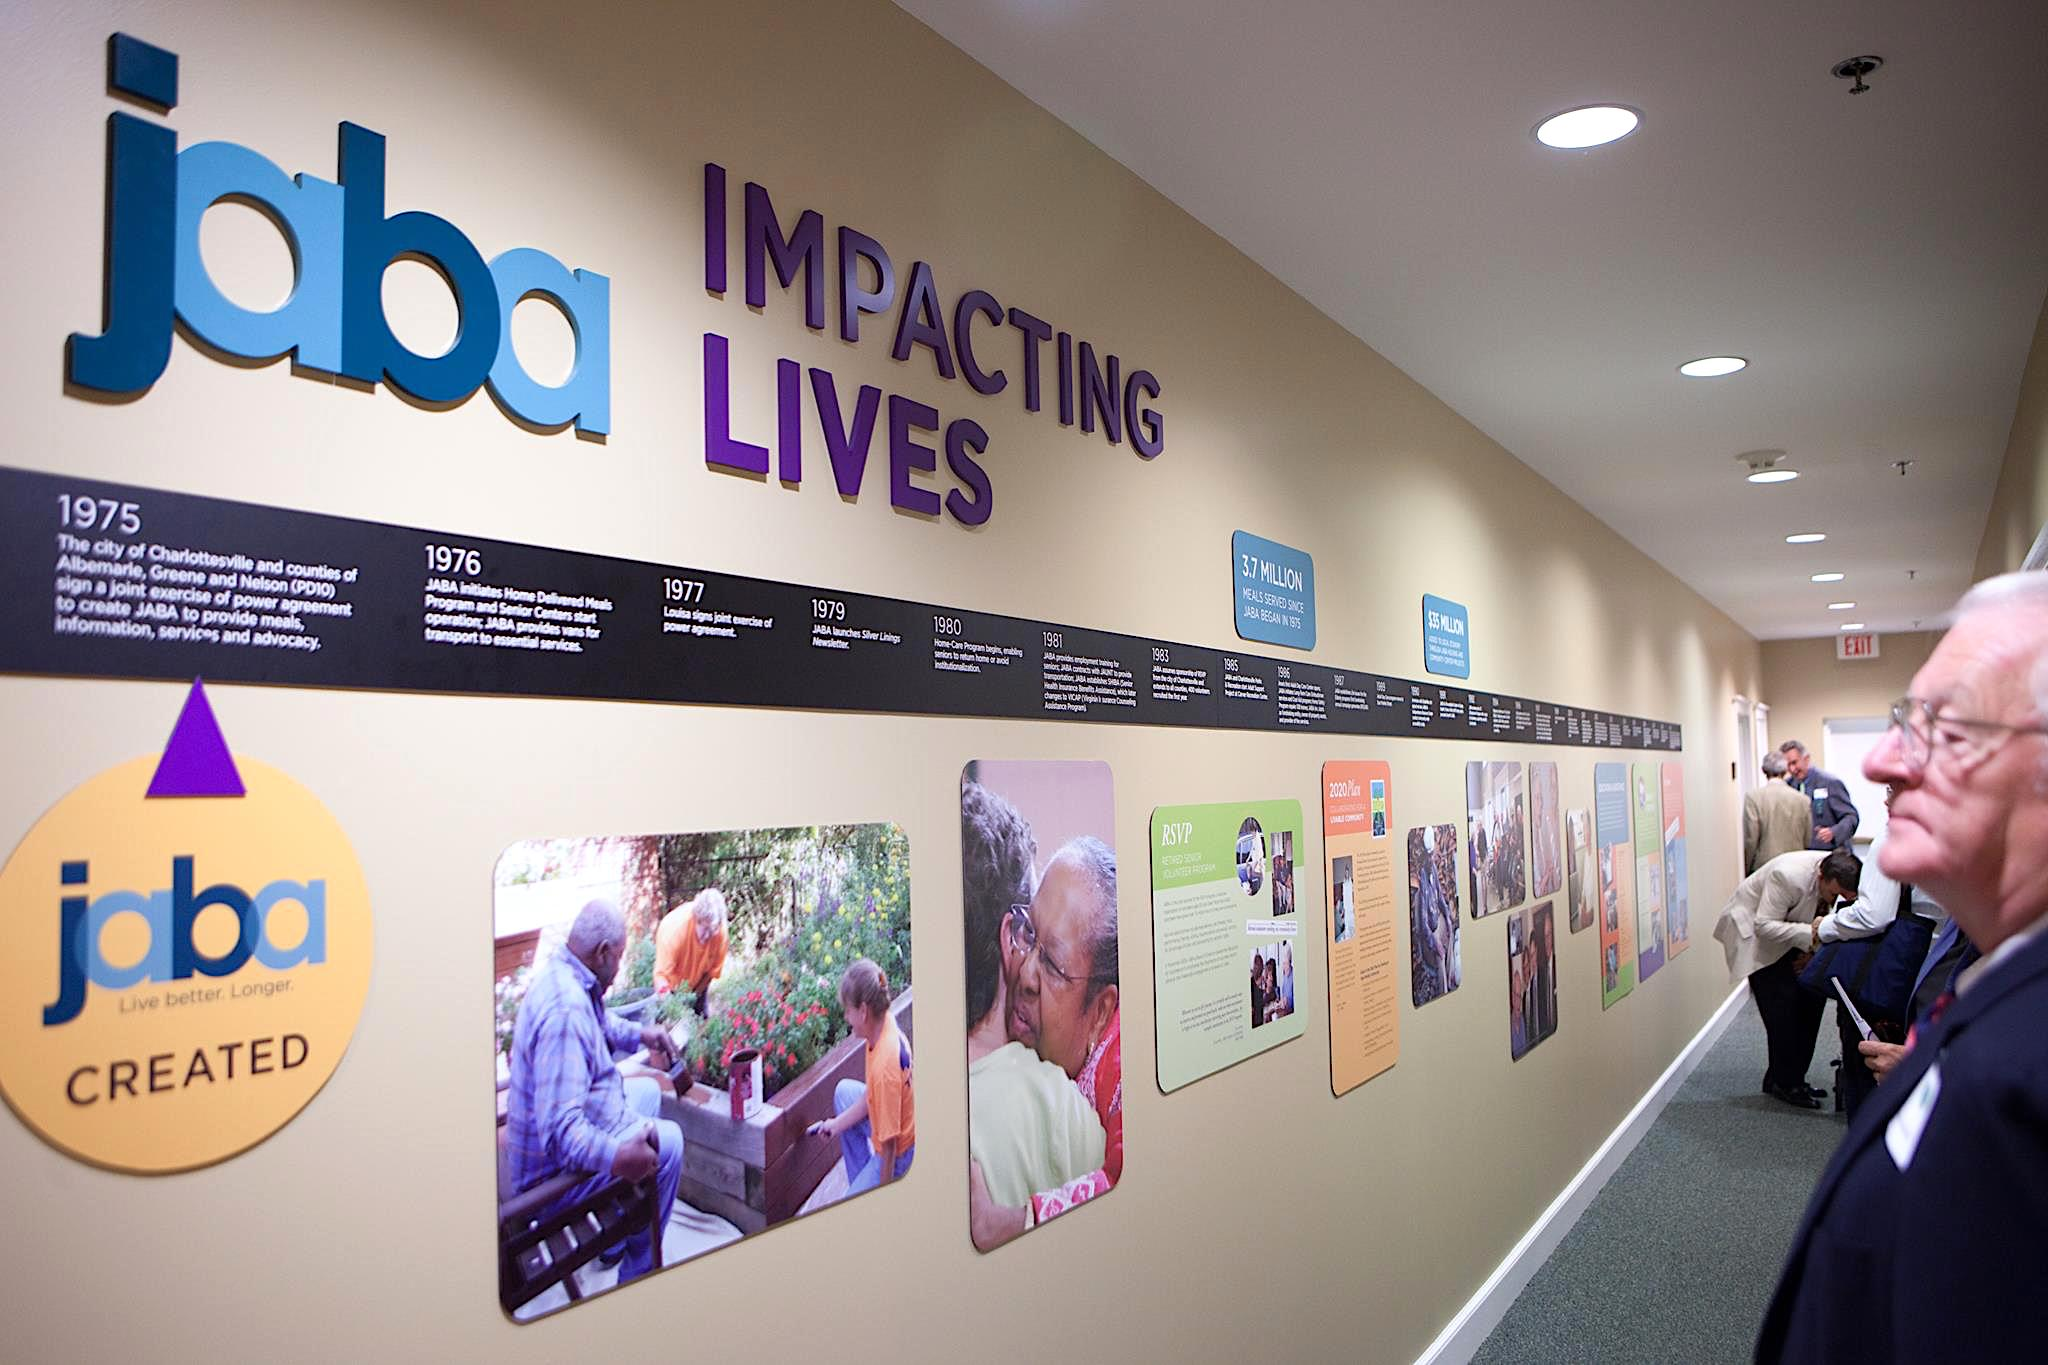 JABA has been impacting lives in our community for over 40 years.